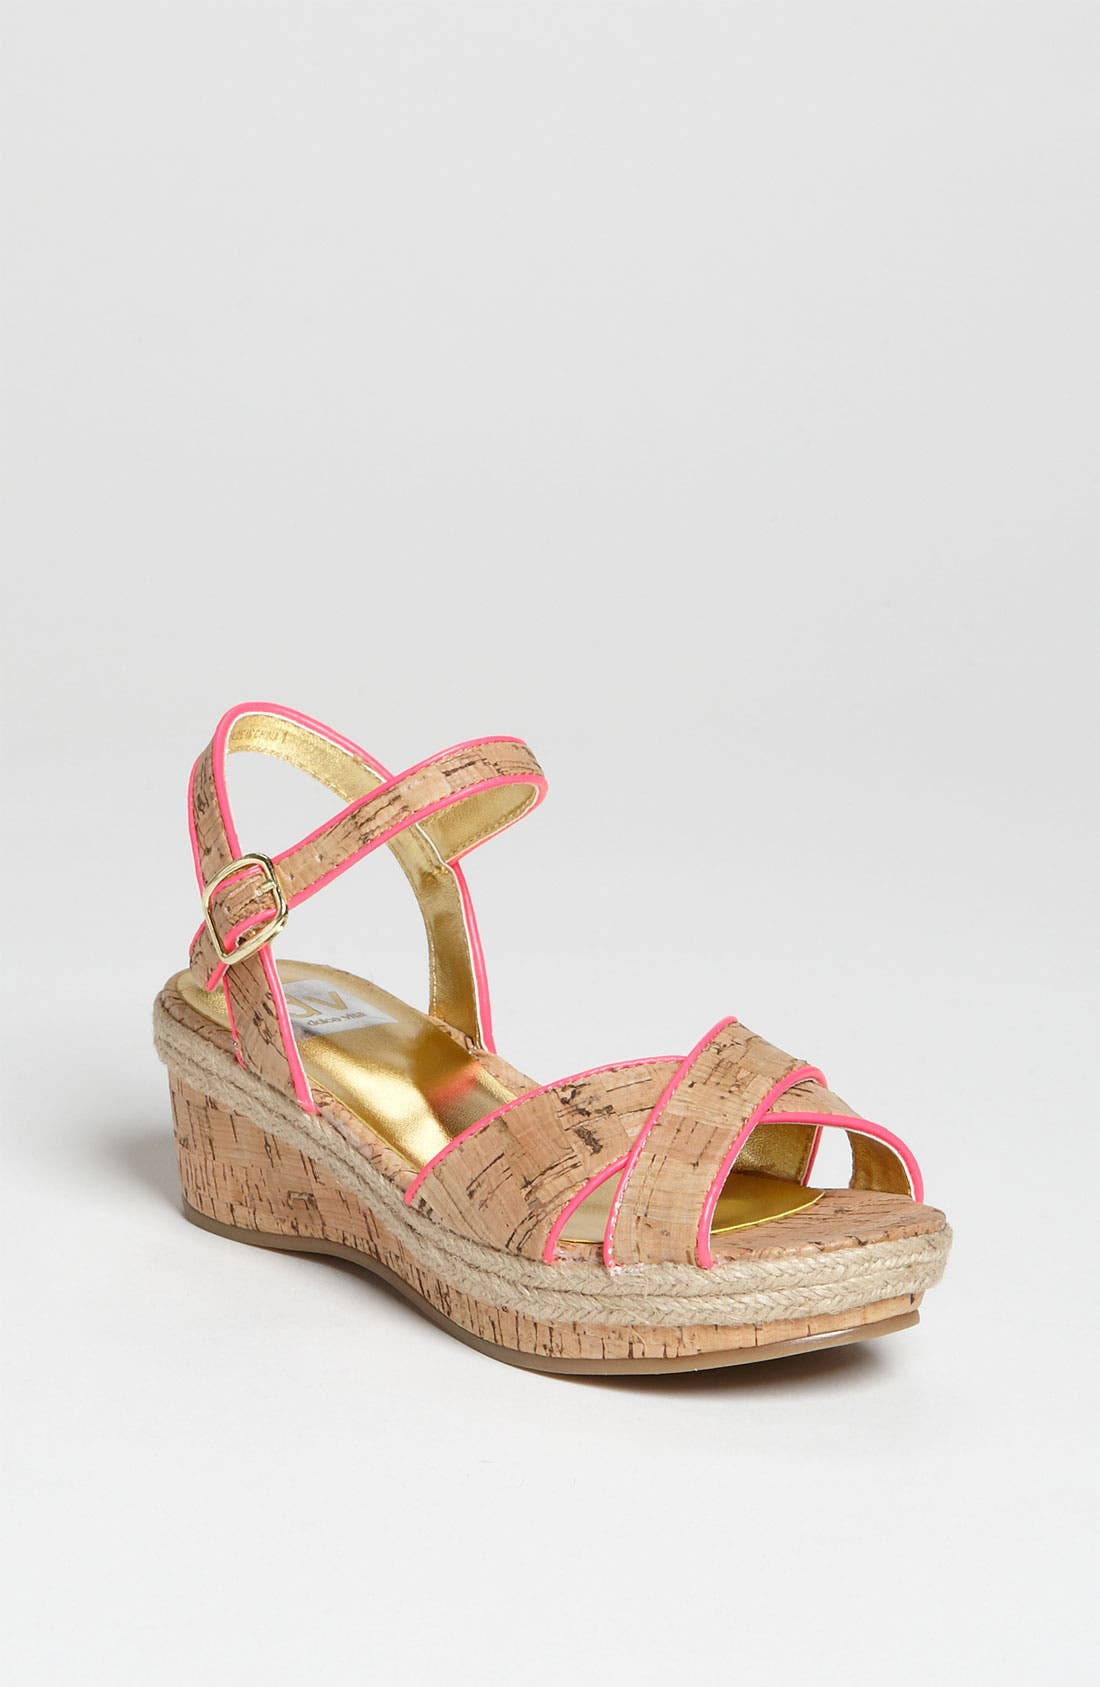 Alternate Image 1 Selected - DV by Dolce Vita 'Callie' Wedge Sandal (Toddler, Little Kid & Big Kid)